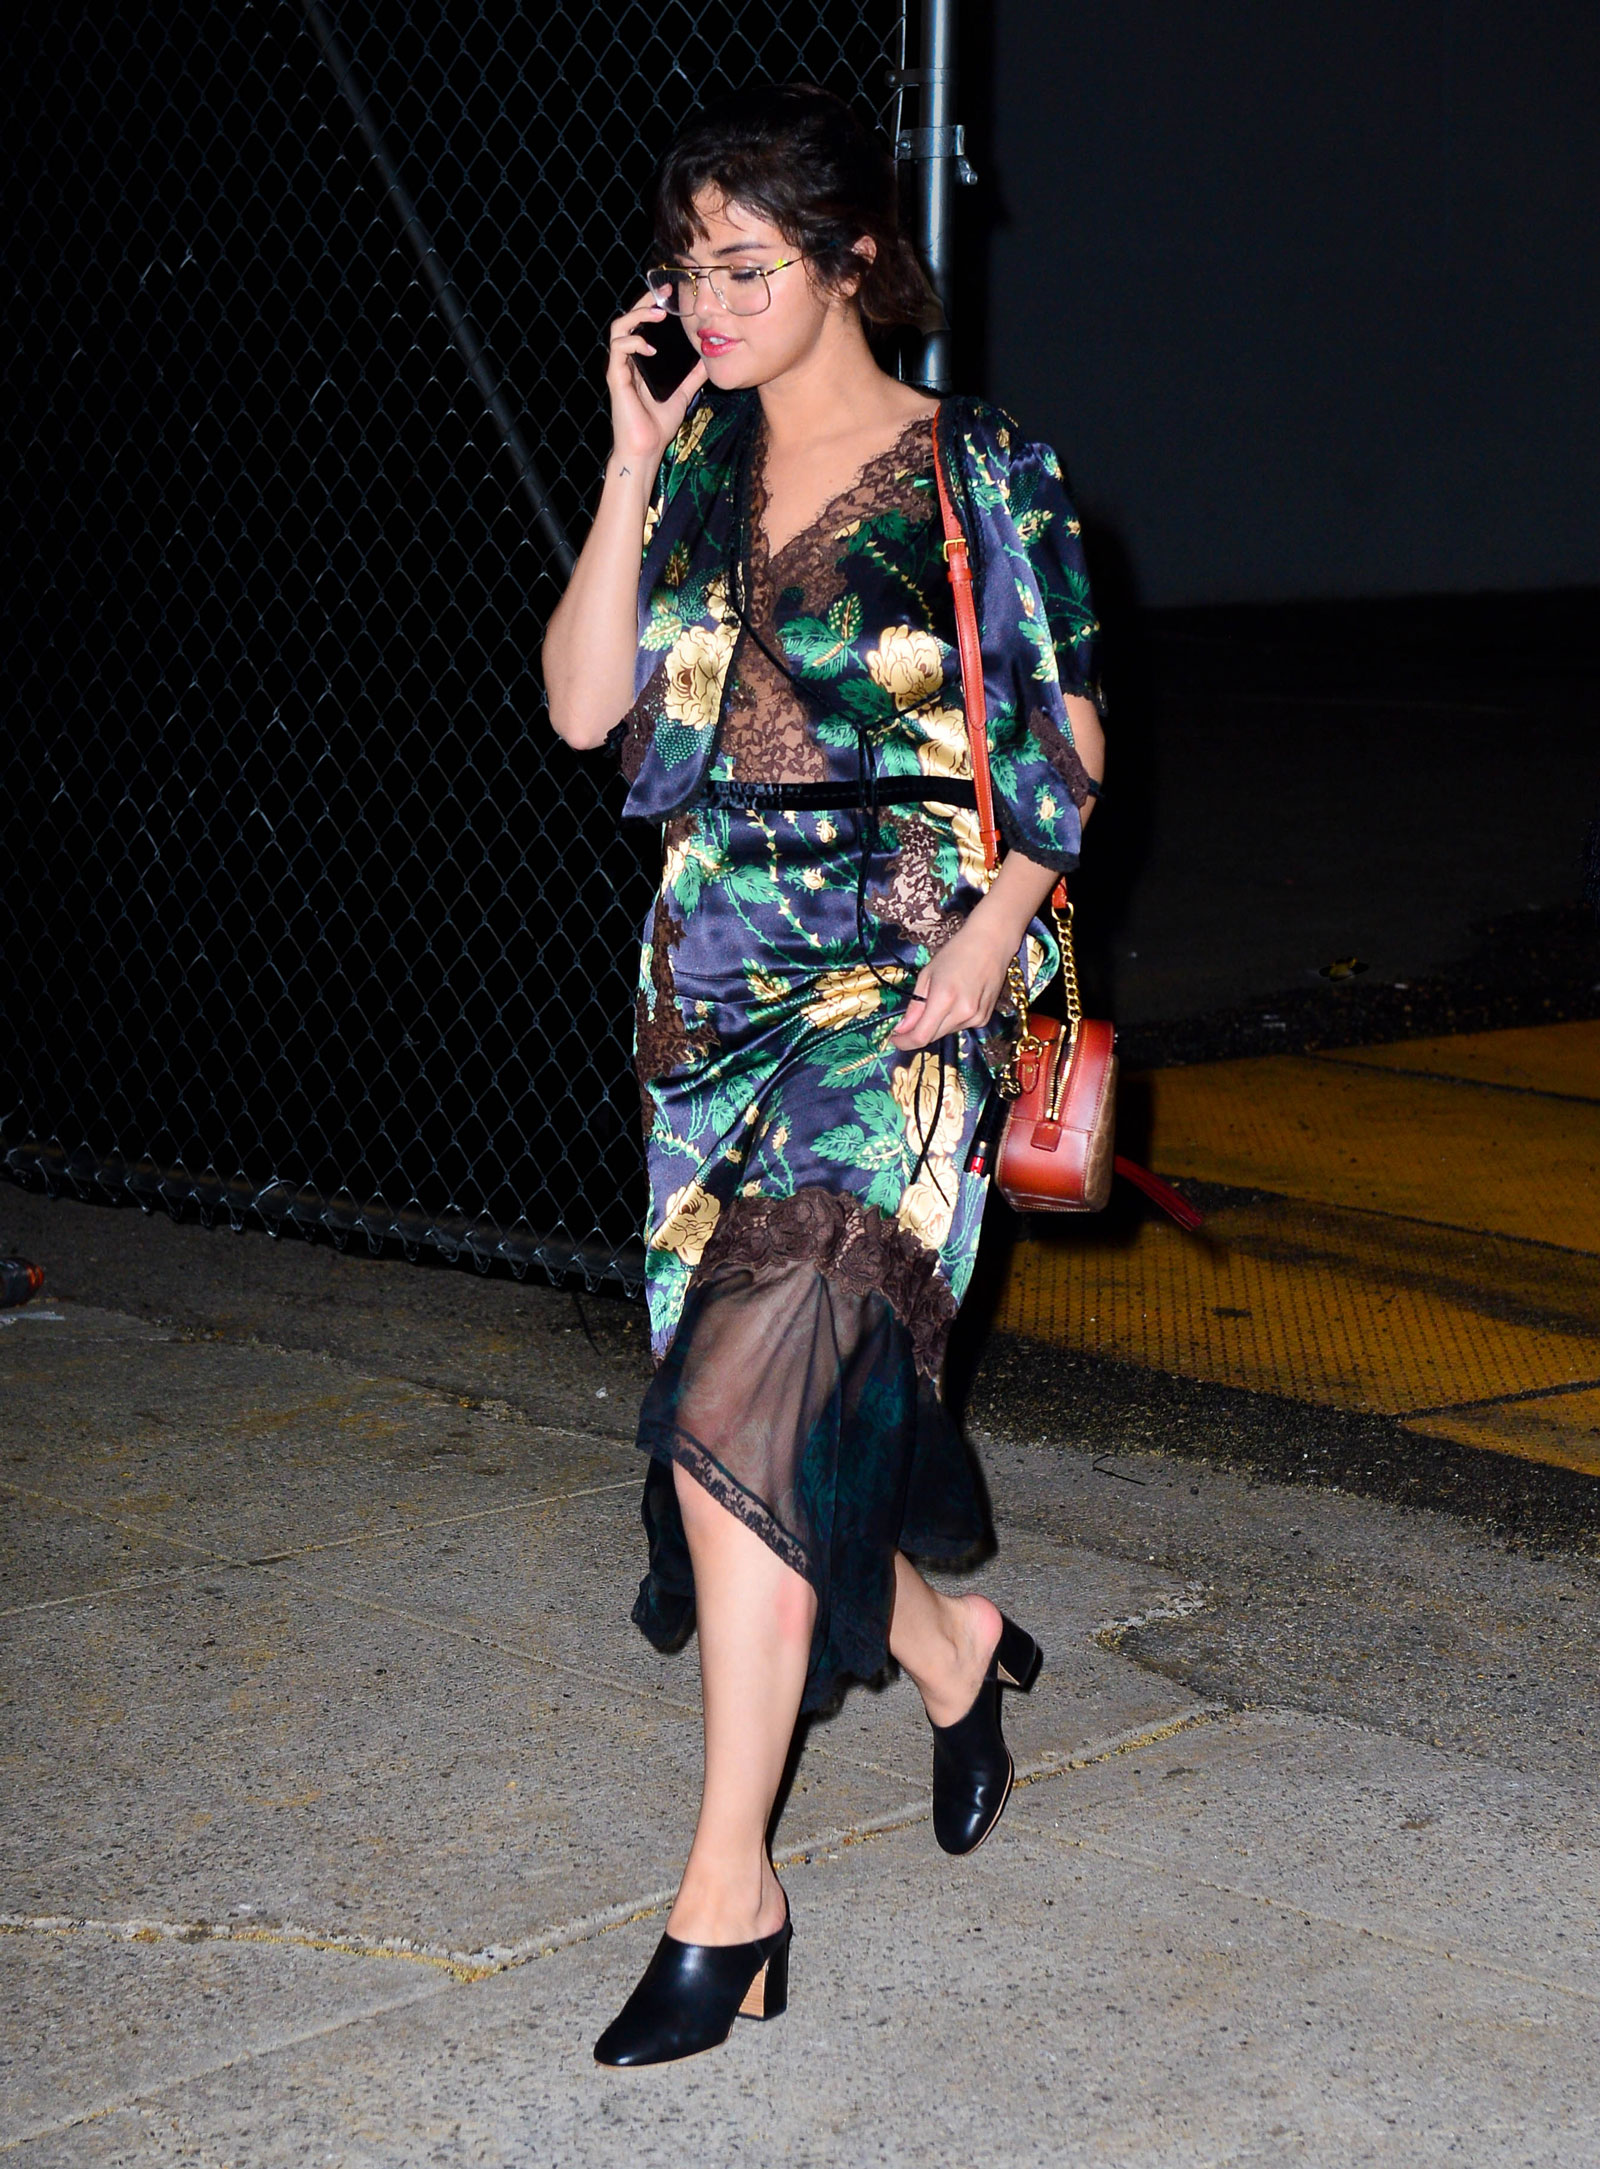 Selena Gomez Floral Dress and Mules